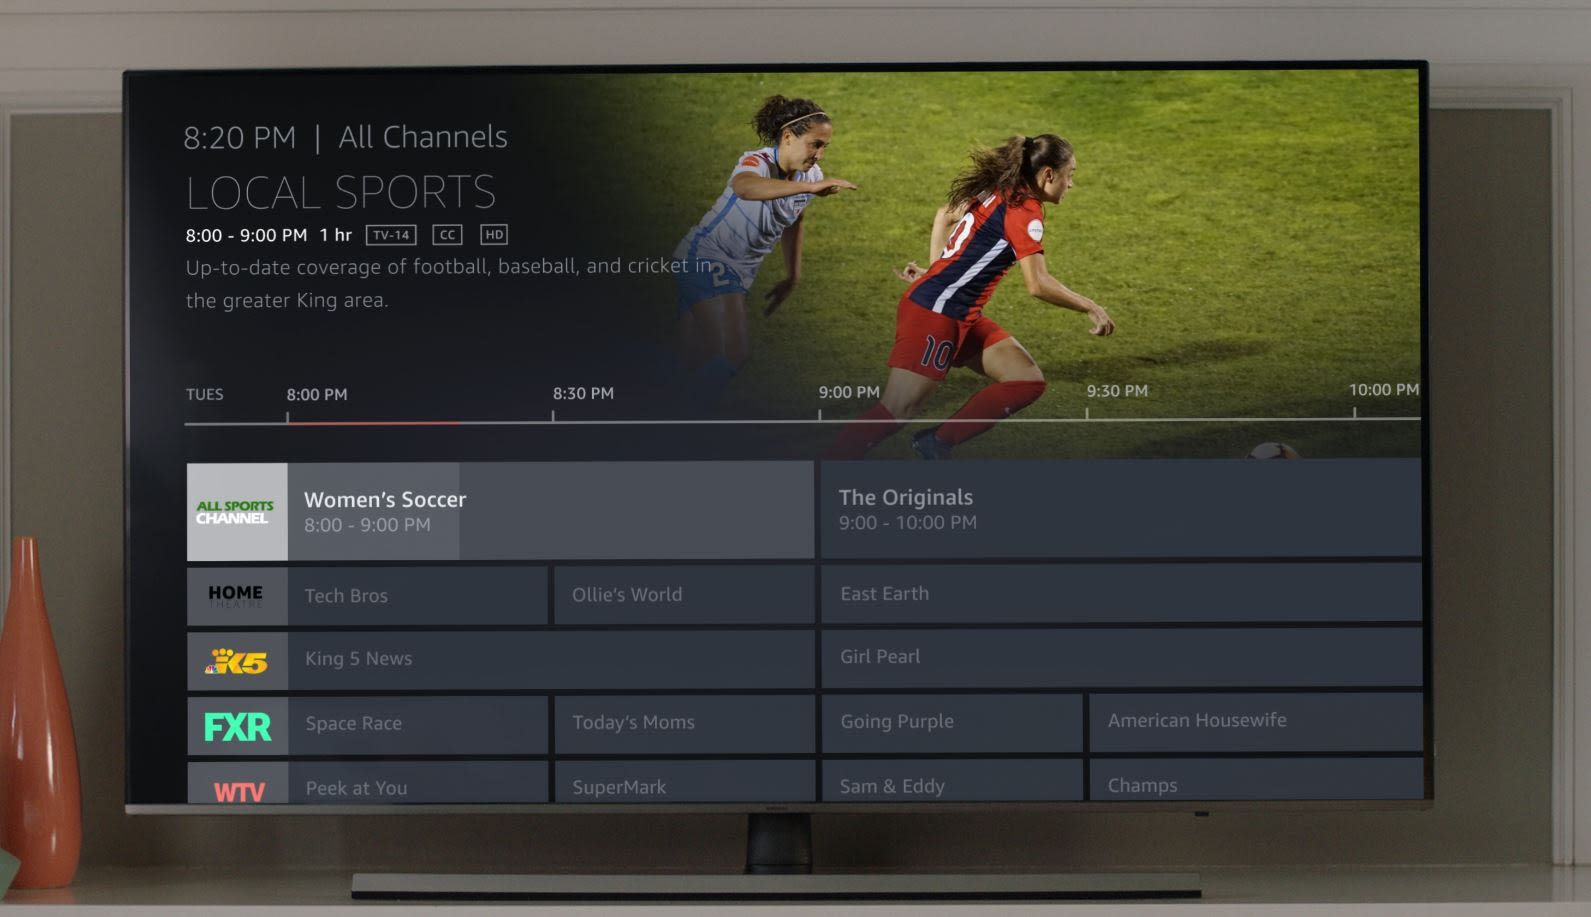 Amazon Has A New Way To Record Hd Tv Shows Even If You Don T Pay For Cable Here S How It Works Fire Tv Amazon Fire Tv Tvs